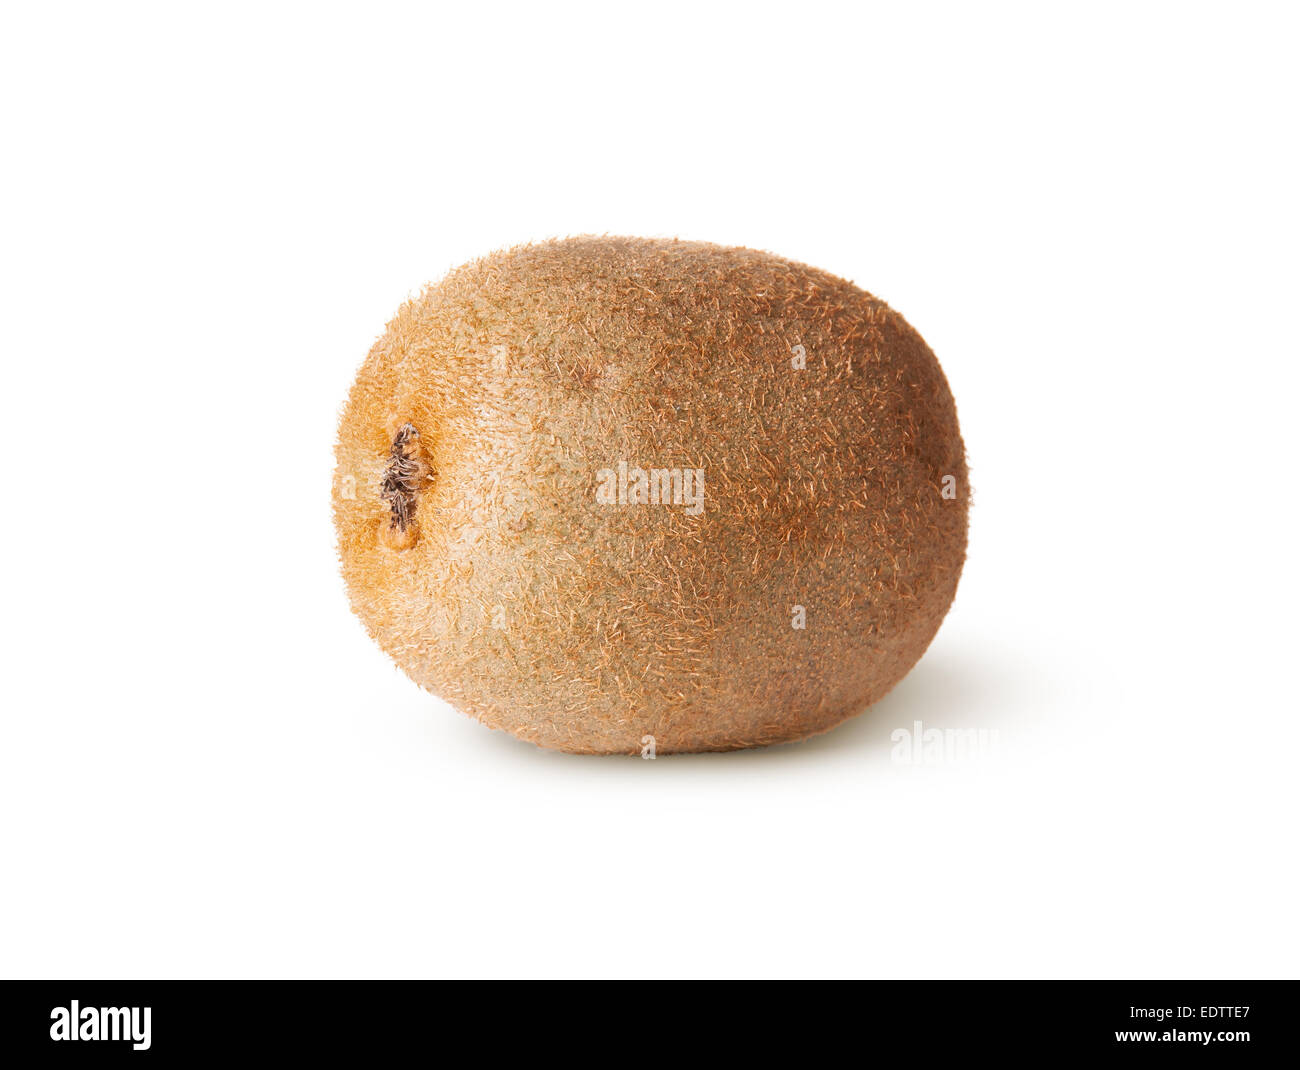 Single Of Juicy Kiwi Fruit Isolated On White Background - Stock Image